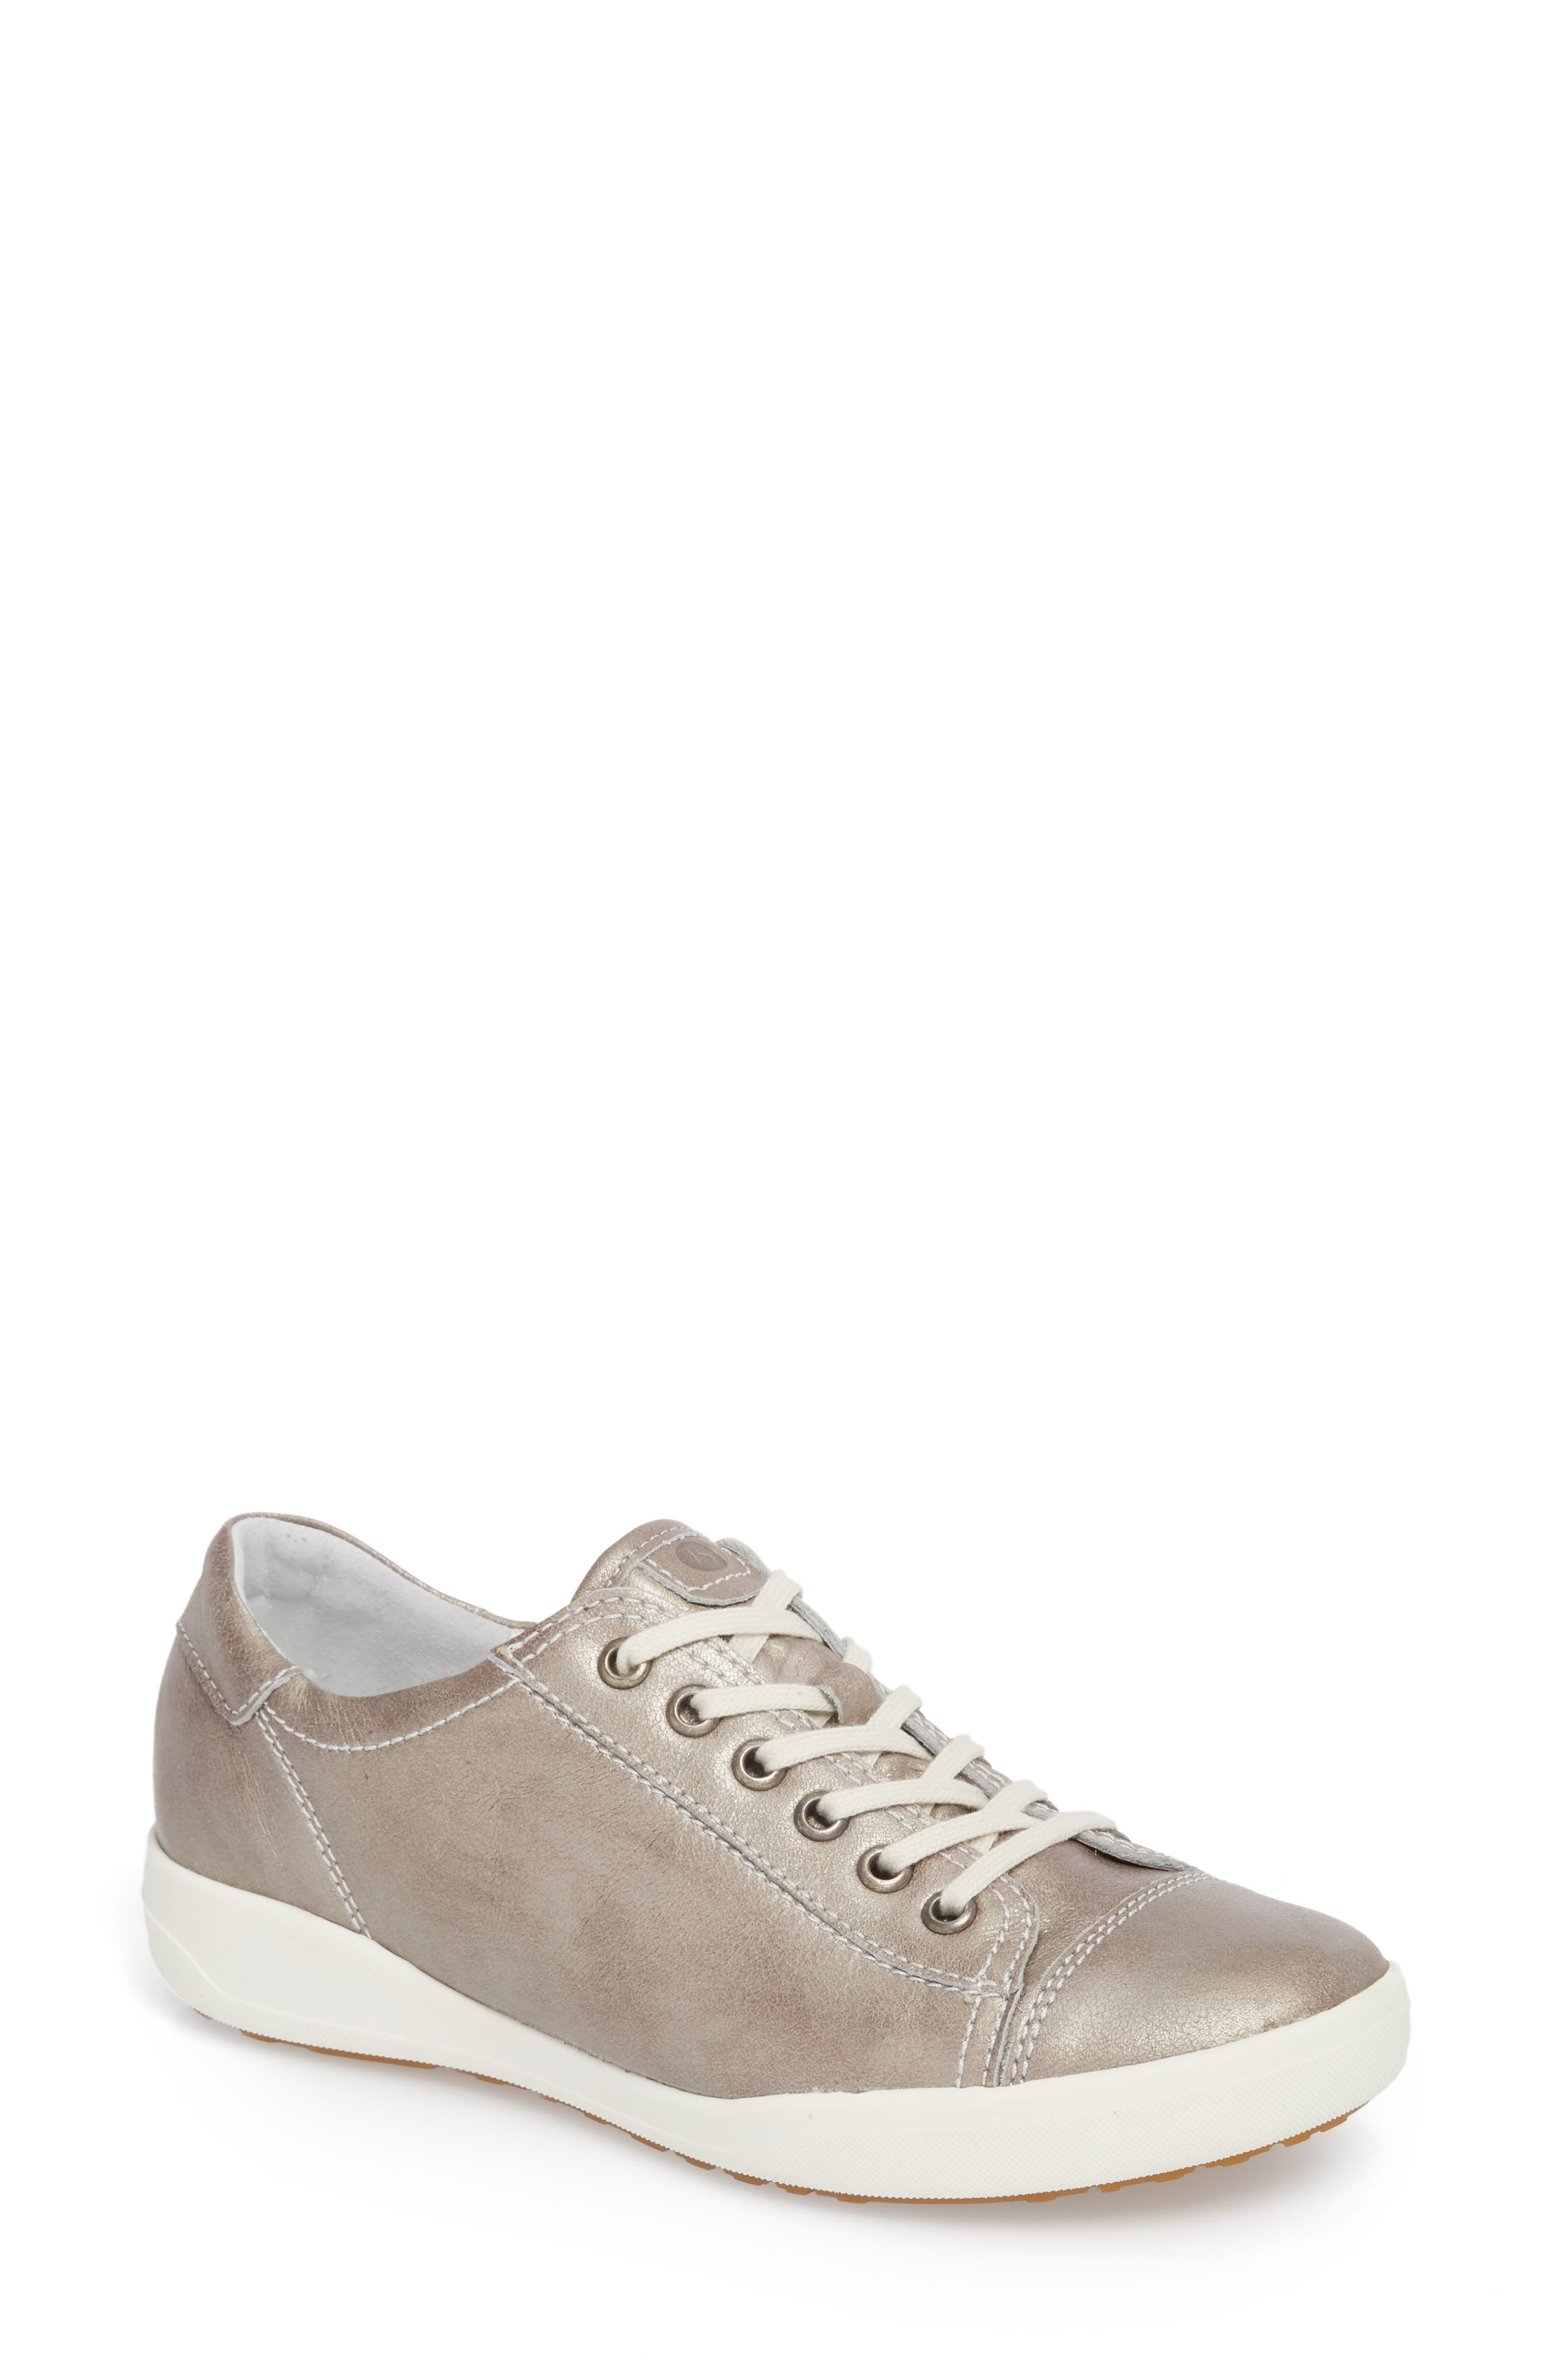 Sina 11 Sneaker,                         Main,                         color, Platin Leather